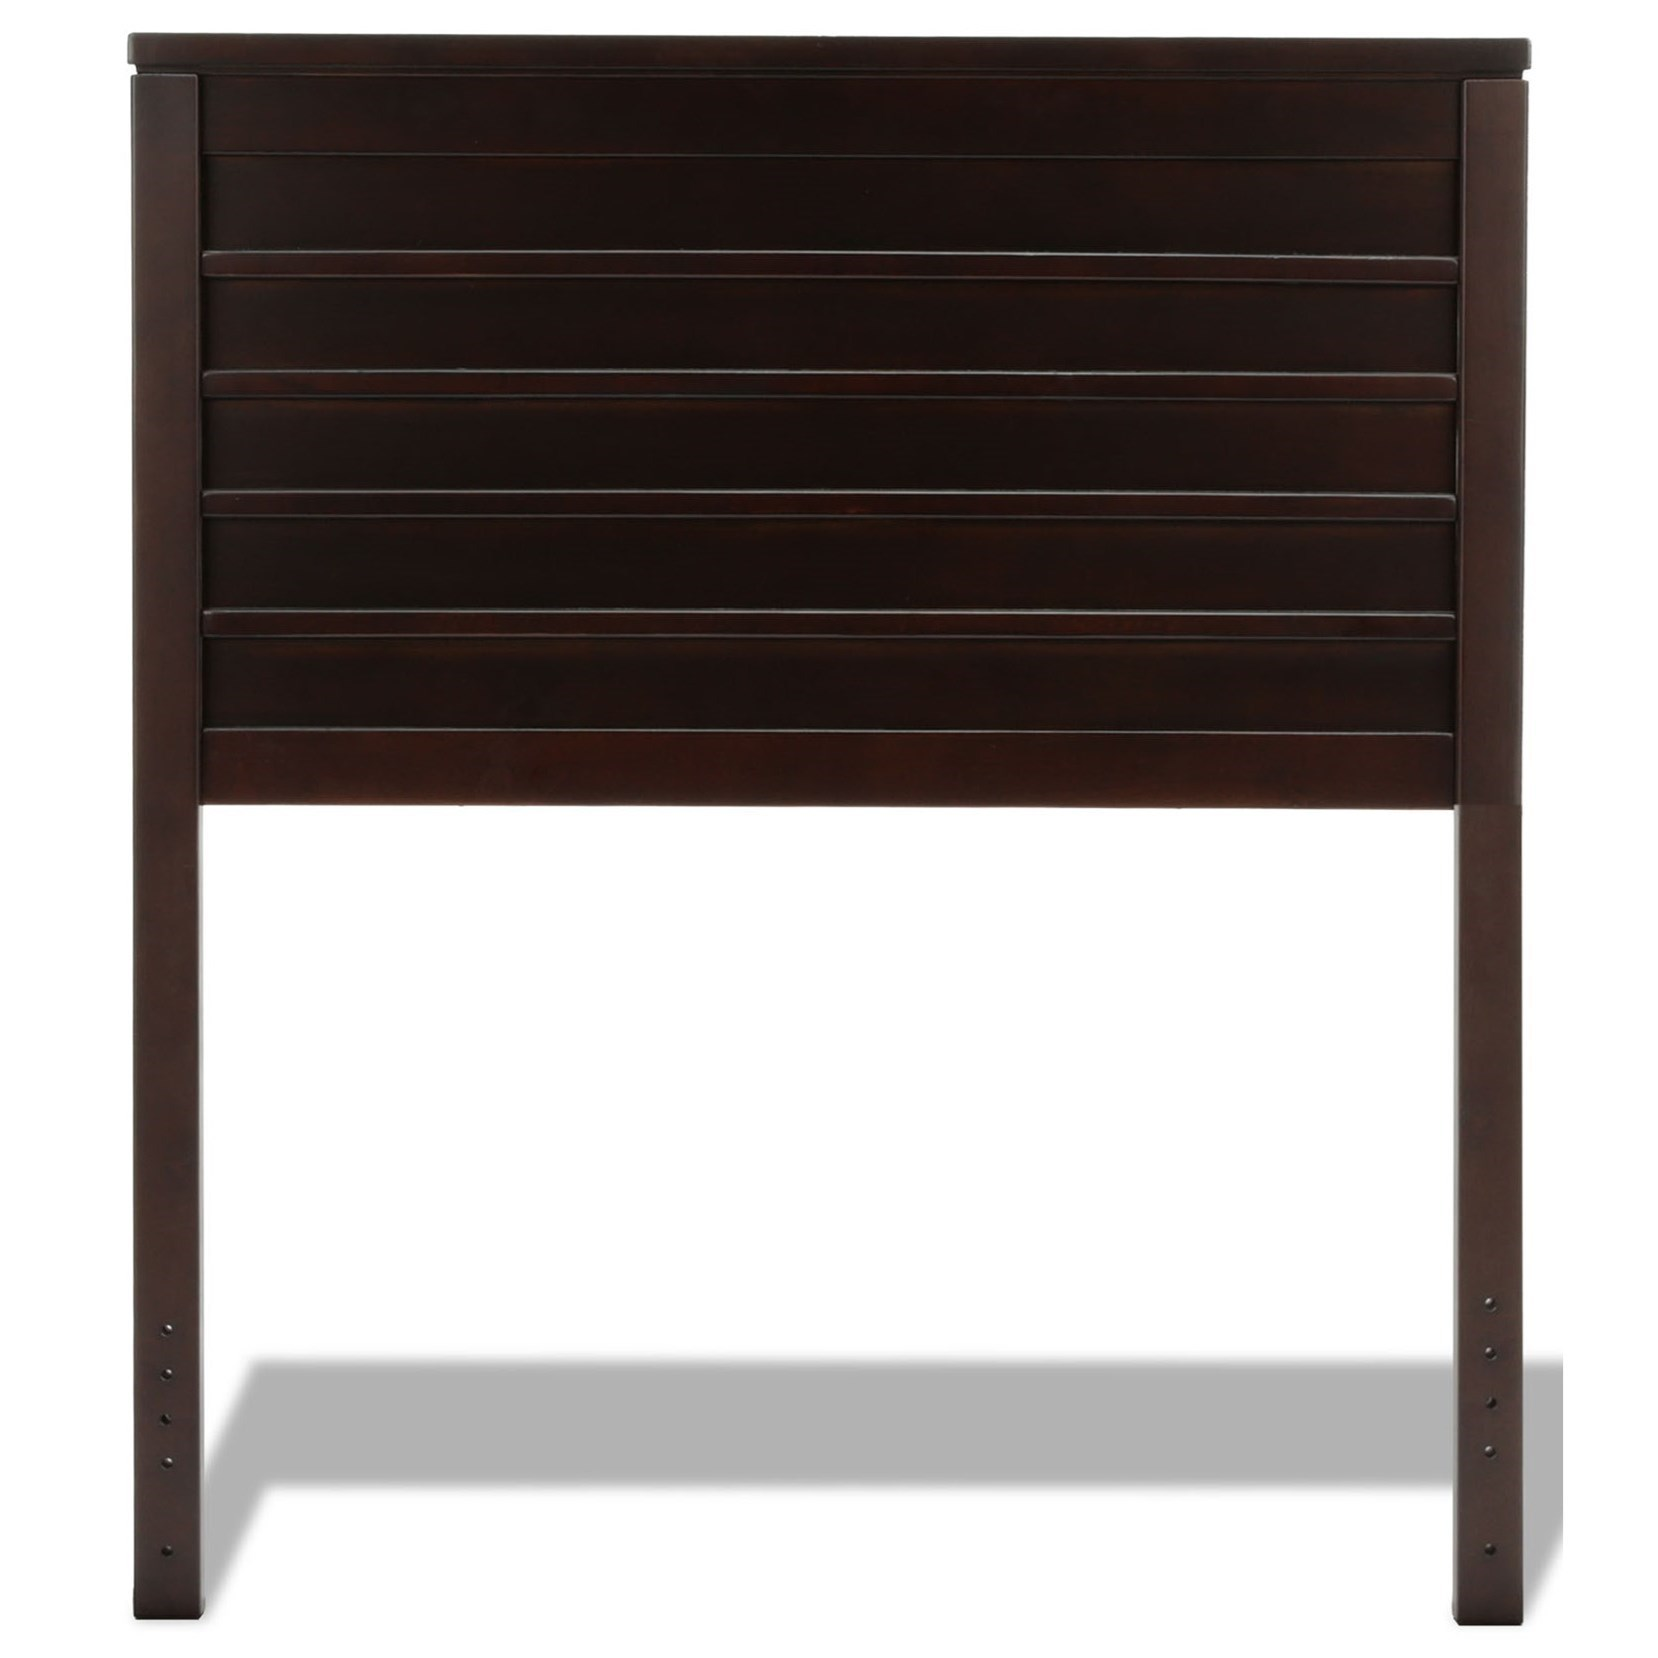 Fashion Bed Group Wood Beds Twin Uptown Wood Headboard